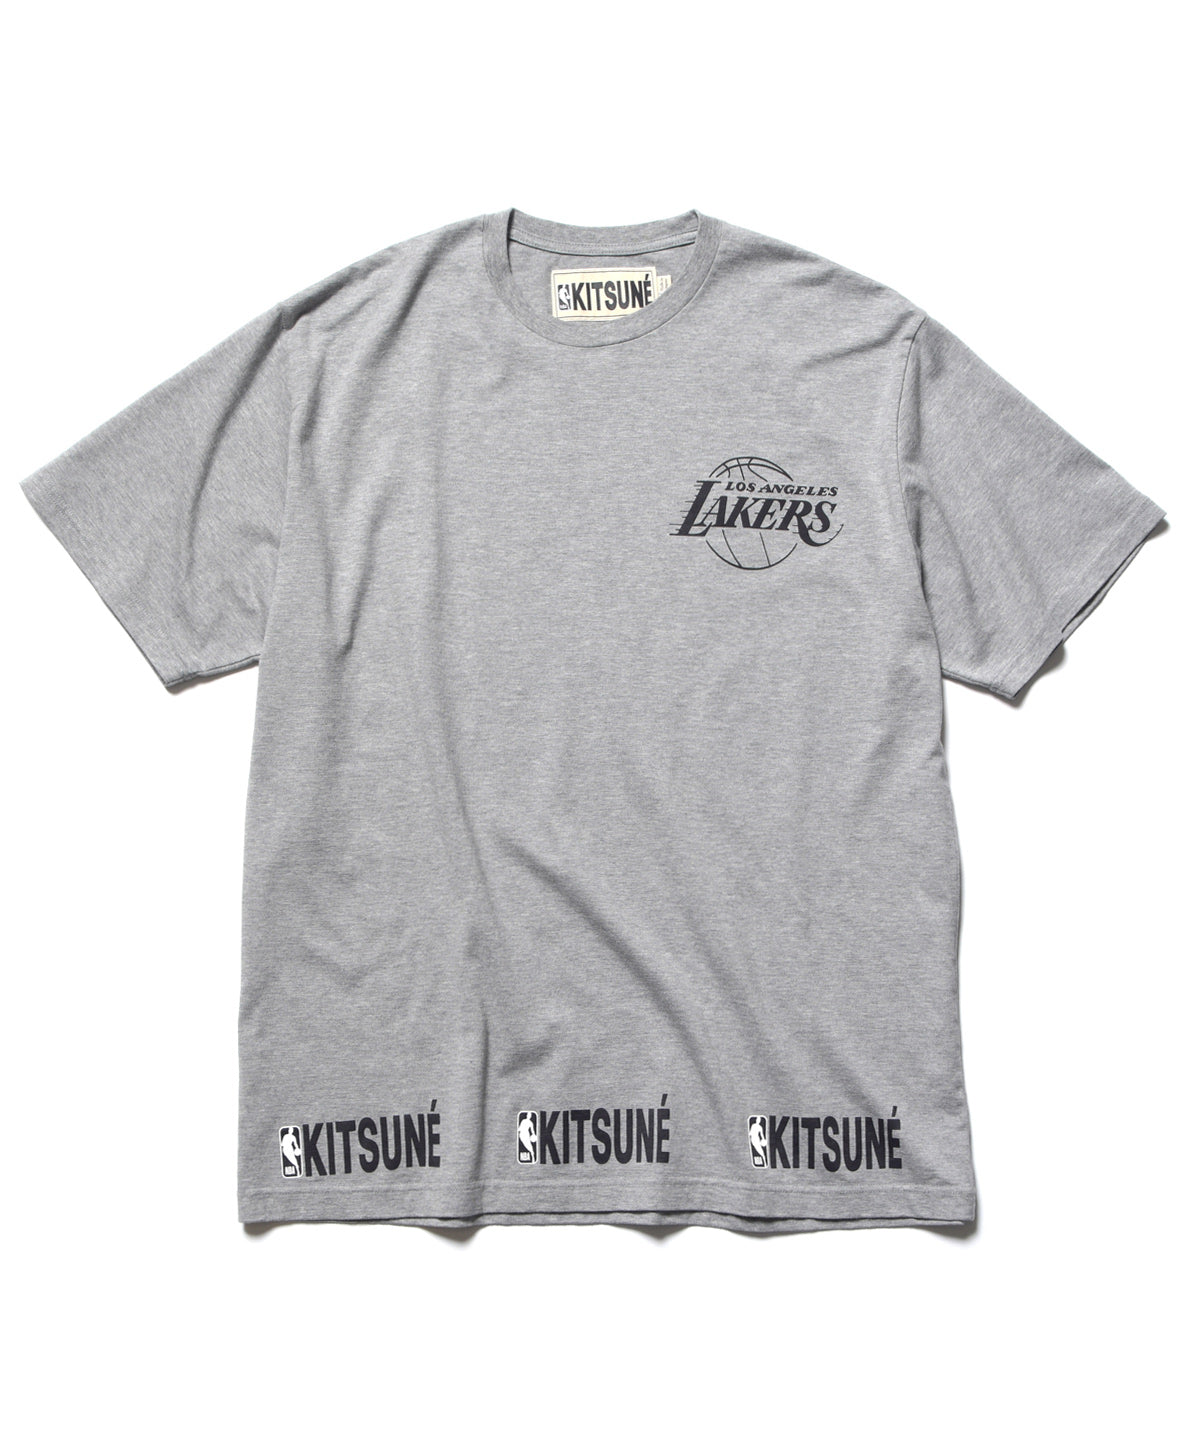 MAISON KITSUNÉ x NBA LAKERS TEE